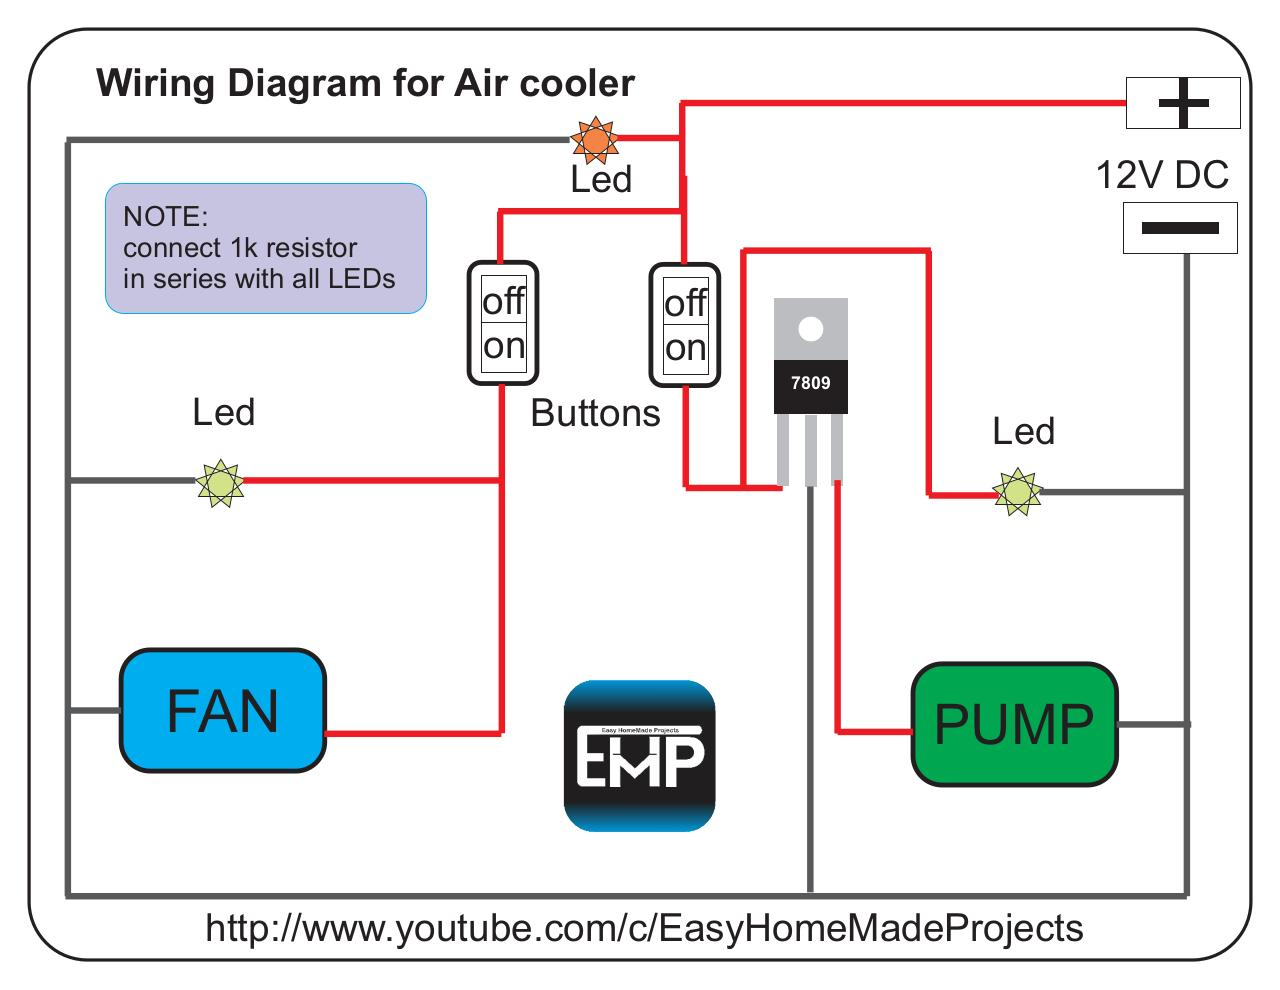 Wiring cdr by usman ahmad diagram for mini air